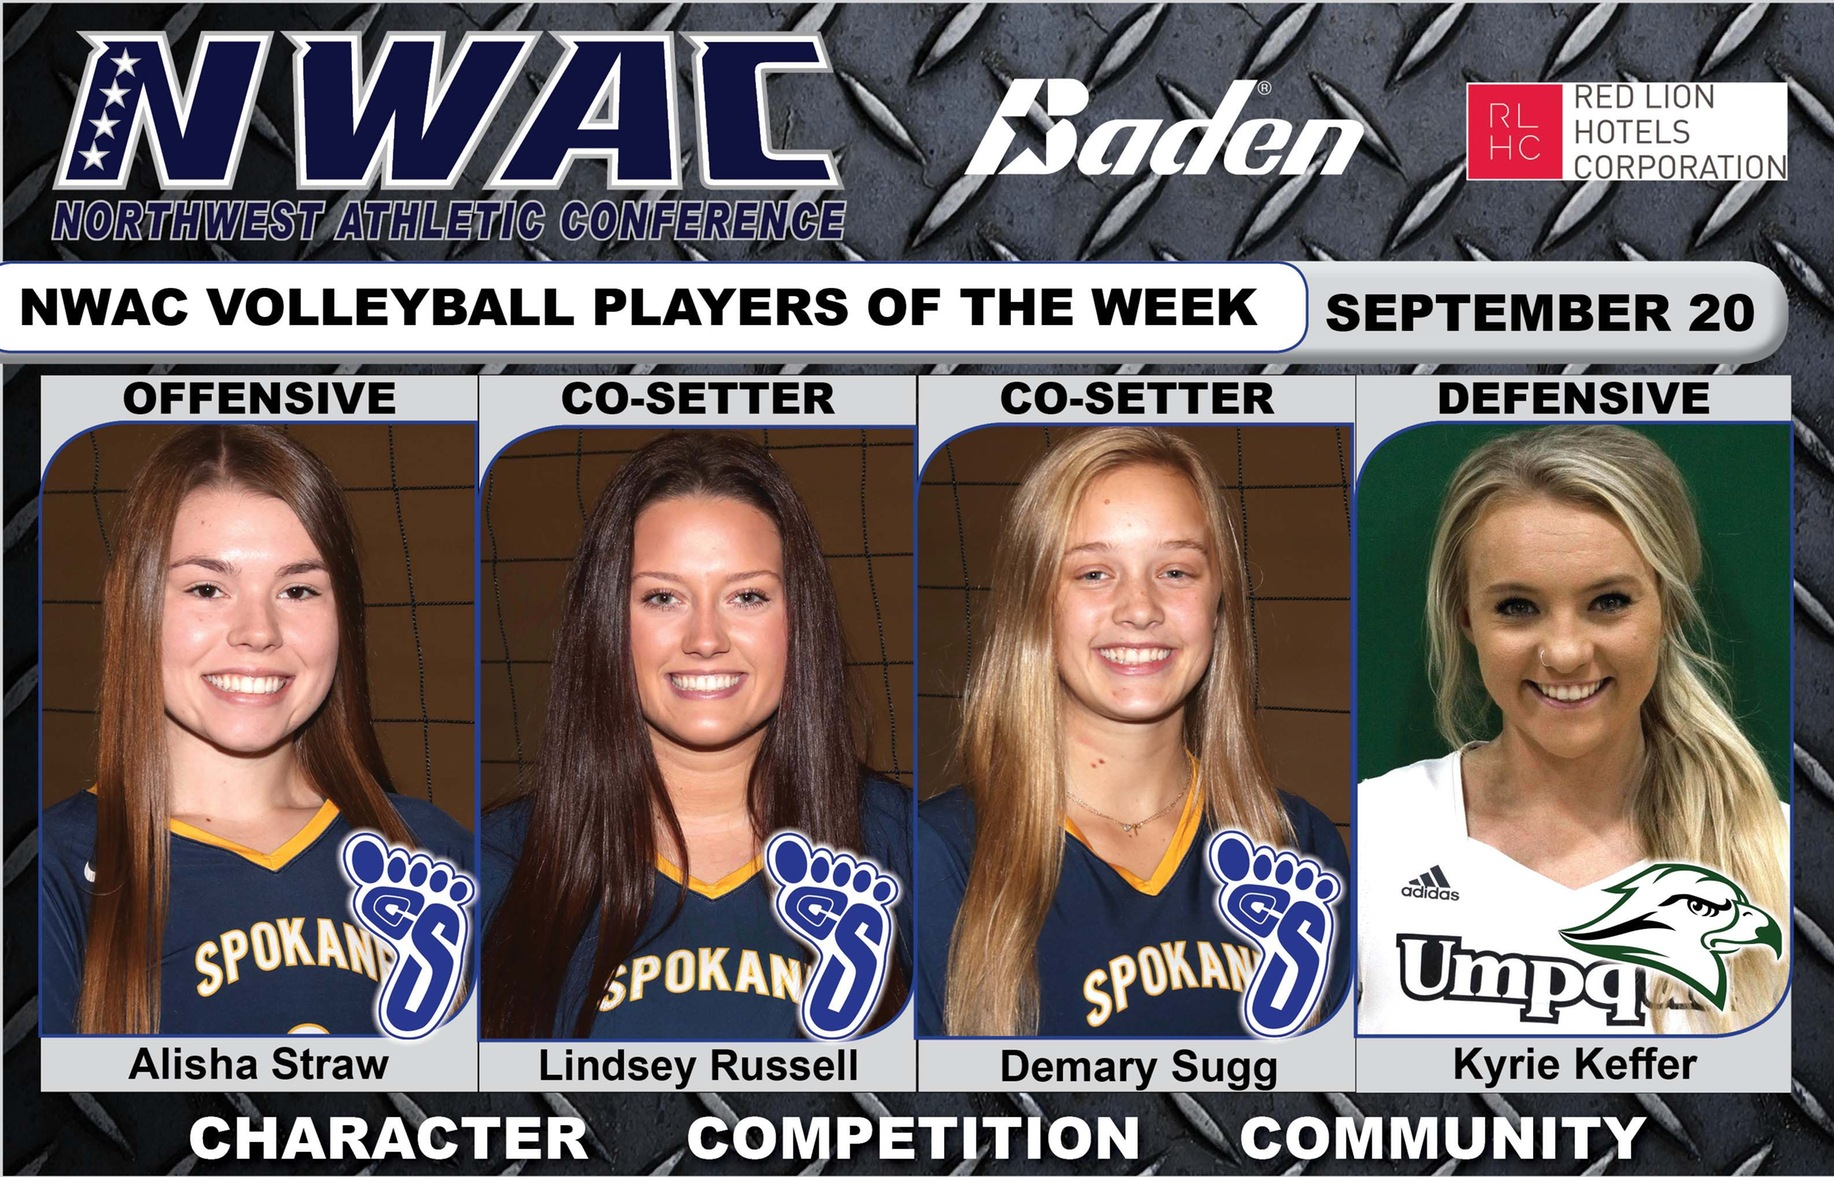 Kyrie Keffer Gets Regional and NWAC Defensive Player of the Week.